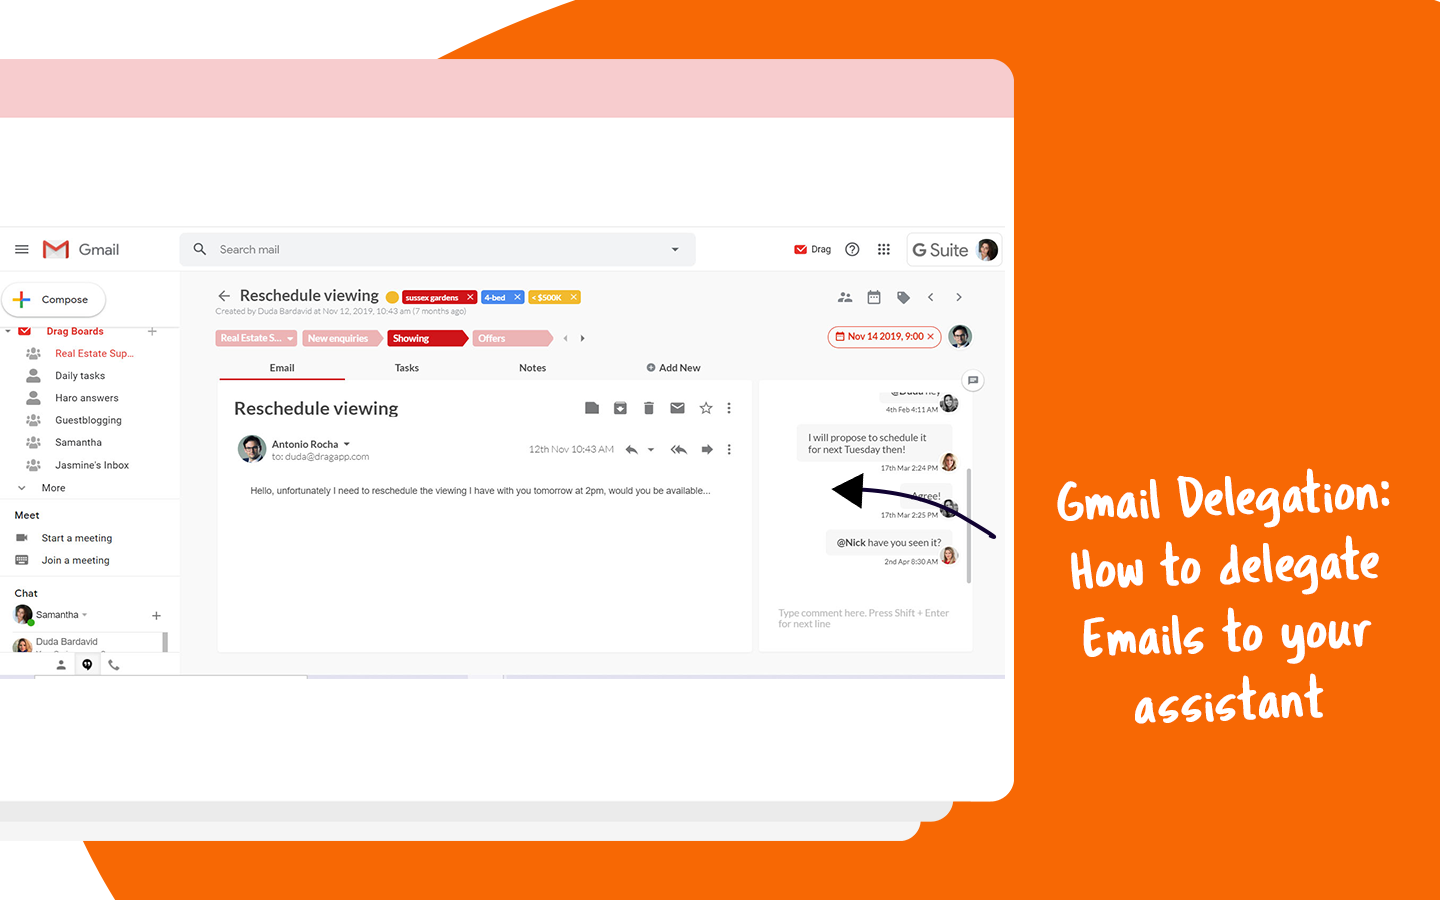 Gmail Delegation How To Delegate Emails To Your Assistant